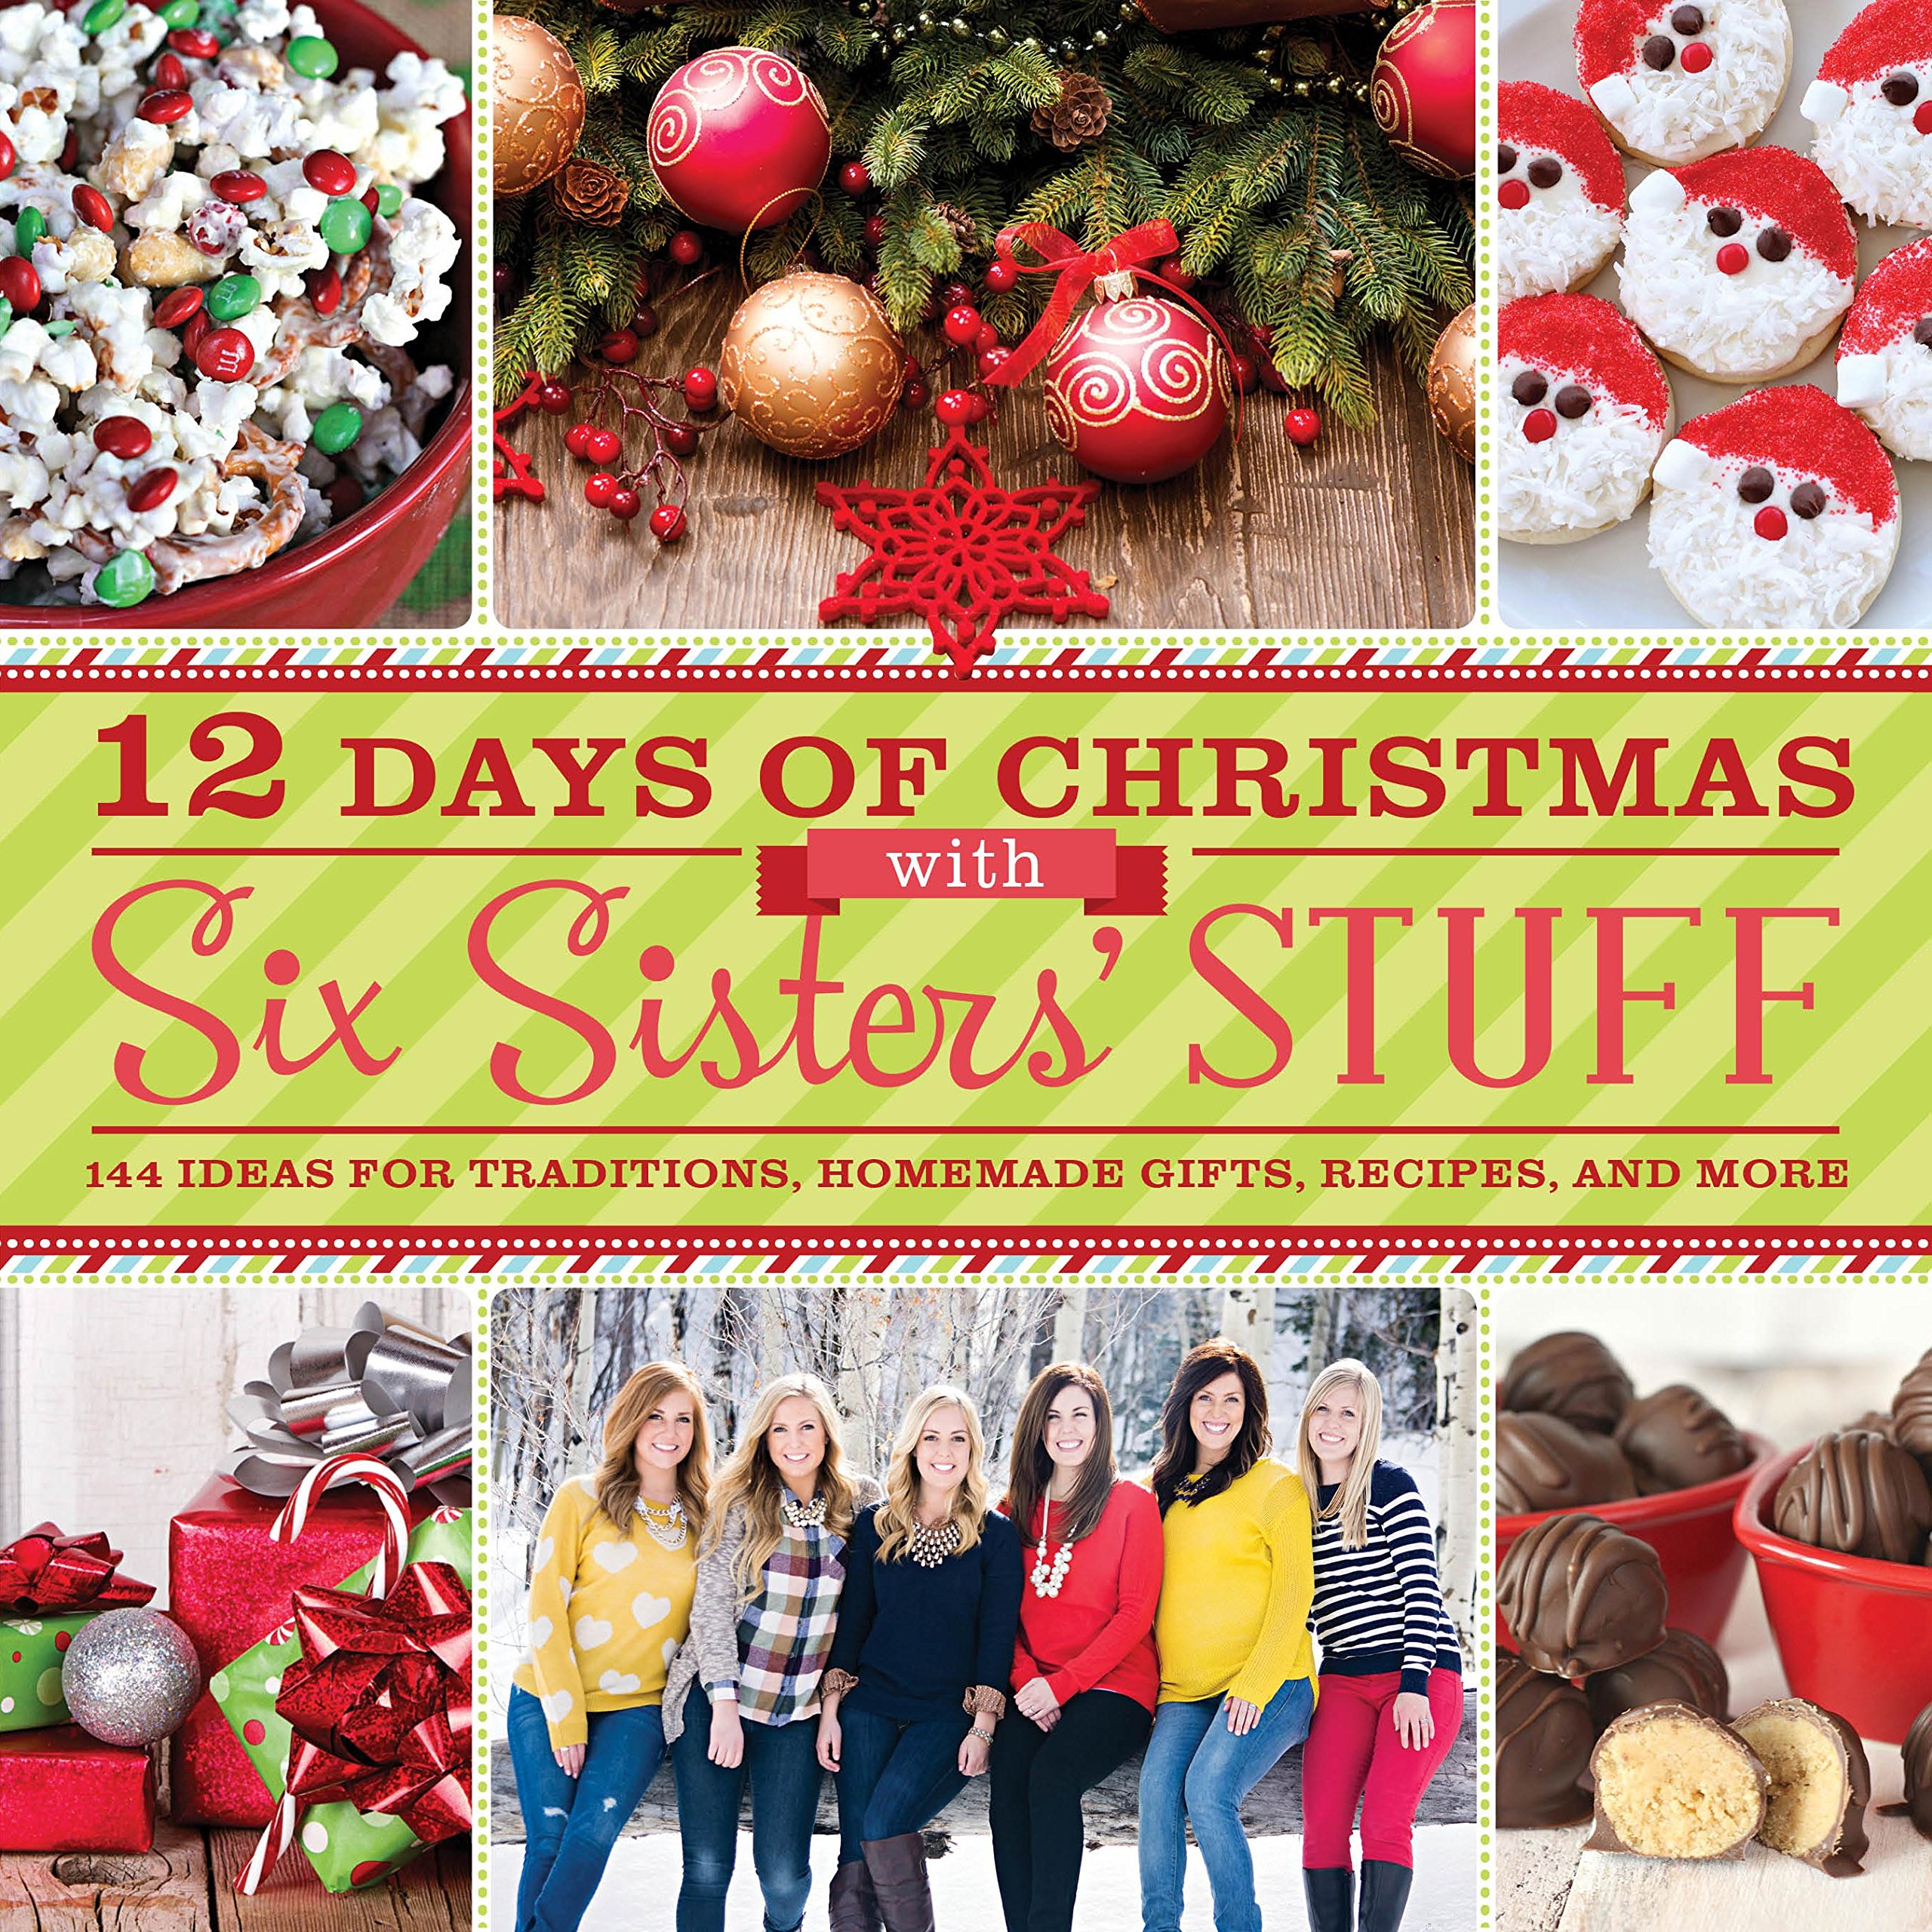 12 days of christmas with six sisters stuff recipes traditions homemade gifts and so much more six sisters stuff 0783027079357 amazoncom books - When Are The Twelve Days Of Christmas